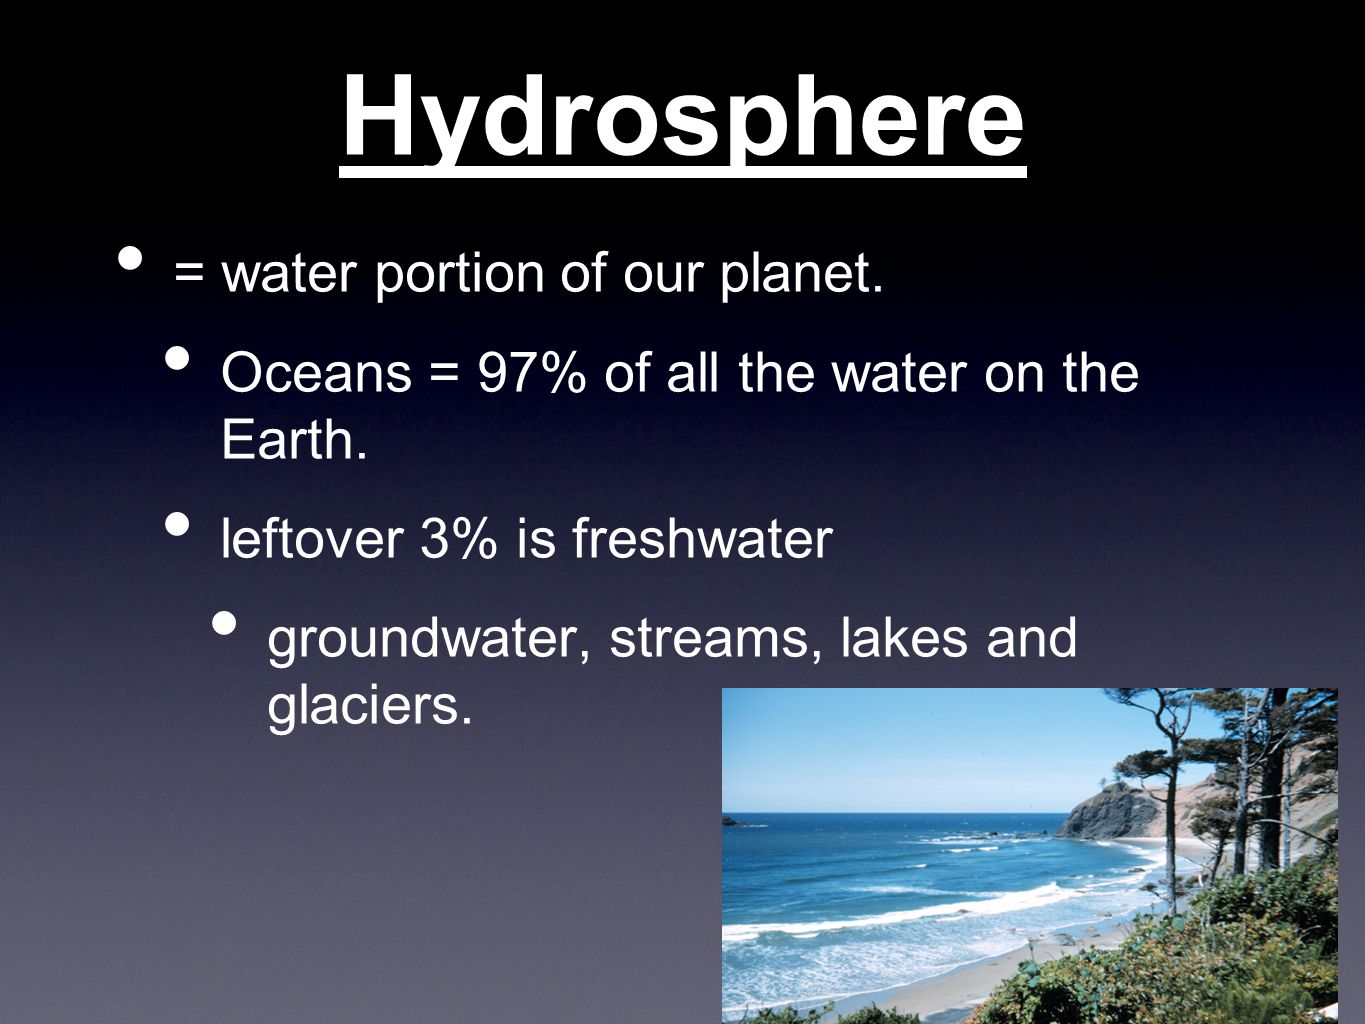 Hydrosphere = water portion of our planet. Oceans = 97% of all the water on the Earth.